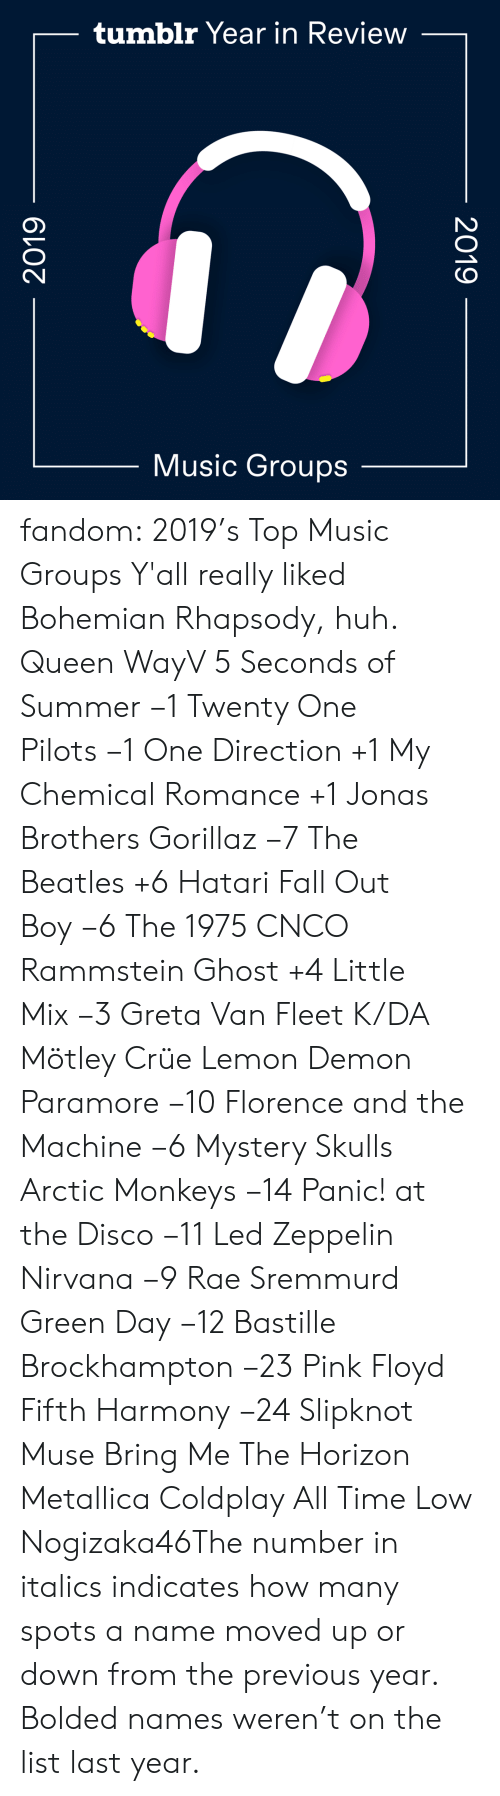 Search: tumblr Year in Review  Music Groups  2019  2019 fandom:  2019's Top Music Groups  Y'all really liked Bohemian Rhapsody, huh.  Queen  WayV  5 Seconds of Summer −1  Twenty One Pilots −1  One Direction +1  My Chemical Romance +1  Jonas Brothers  Gorillaz −7  The Beatles +6  Hatari  Fall Out Boy −6  The 1975  CNCO  Rammstein  Ghost +4  Little Mix −3  Greta Van Fleet  K/DA  Mötley Crüe  Lemon Demon  Paramore −10  Florence and the Machine −6  Mystery Skulls  Arctic Monkeys −14  Panic! at the Disco −11  Led Zeppelin   Nirvana −9  Rae Sremmurd  Green Day −12  Bastille  Brockhampton −23  Pink Floyd  Fifth Harmony −24  Slipknot  Muse  Bring Me The Horizon  Metallica  Coldplay  All Time Low  Nogizaka46The number in italics indicates how many spots a name moved up or down from the previous year. Bolded names weren't on the list last year.